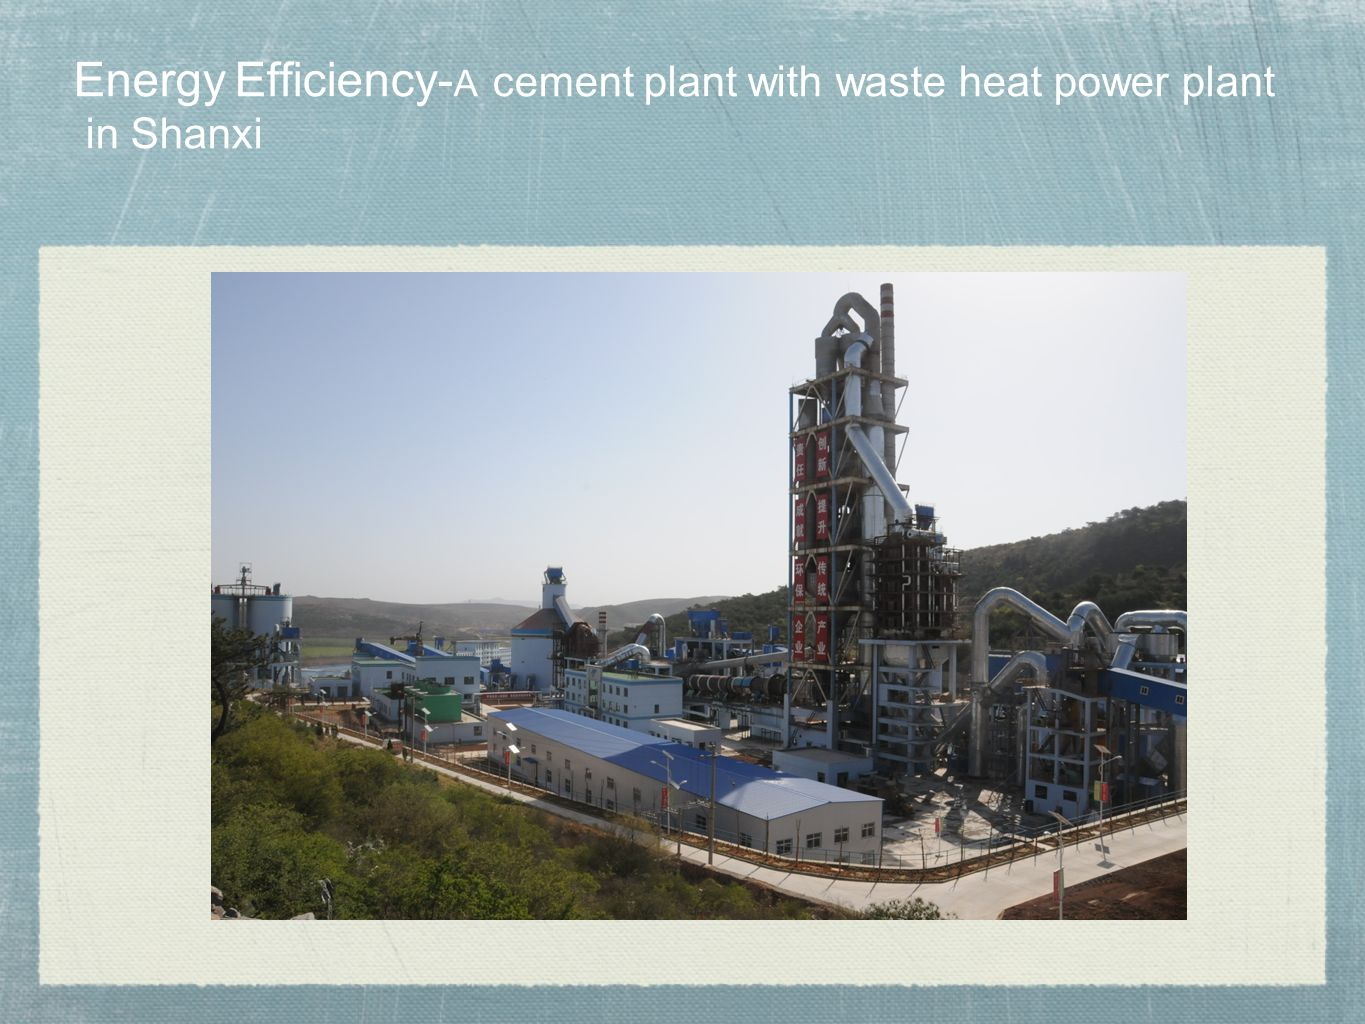 Energy Efficiency-A cement plant with waste heat power plant in Shanxi